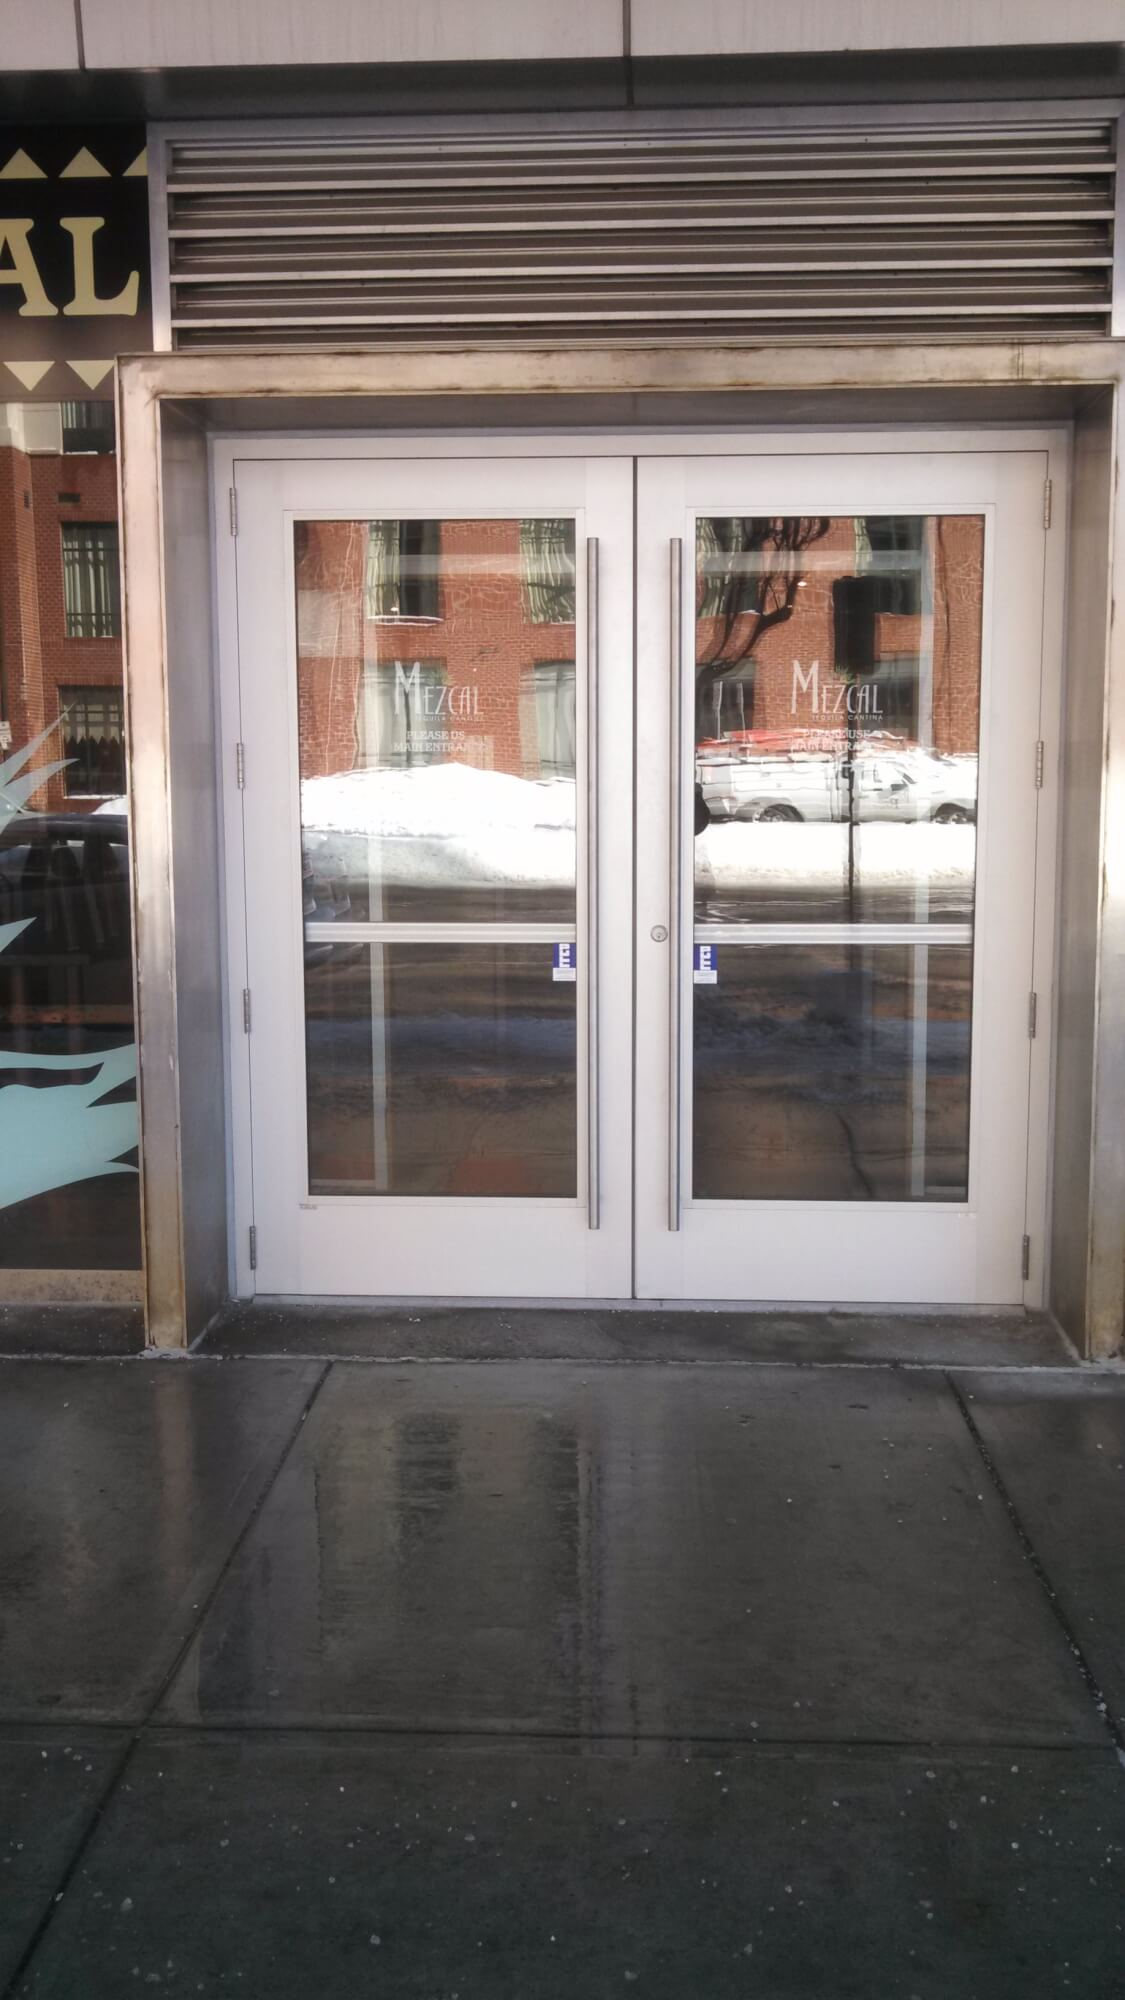 Commercial Glass Doors - Modern Glazing Glass Manufacturer in Worcester, MA